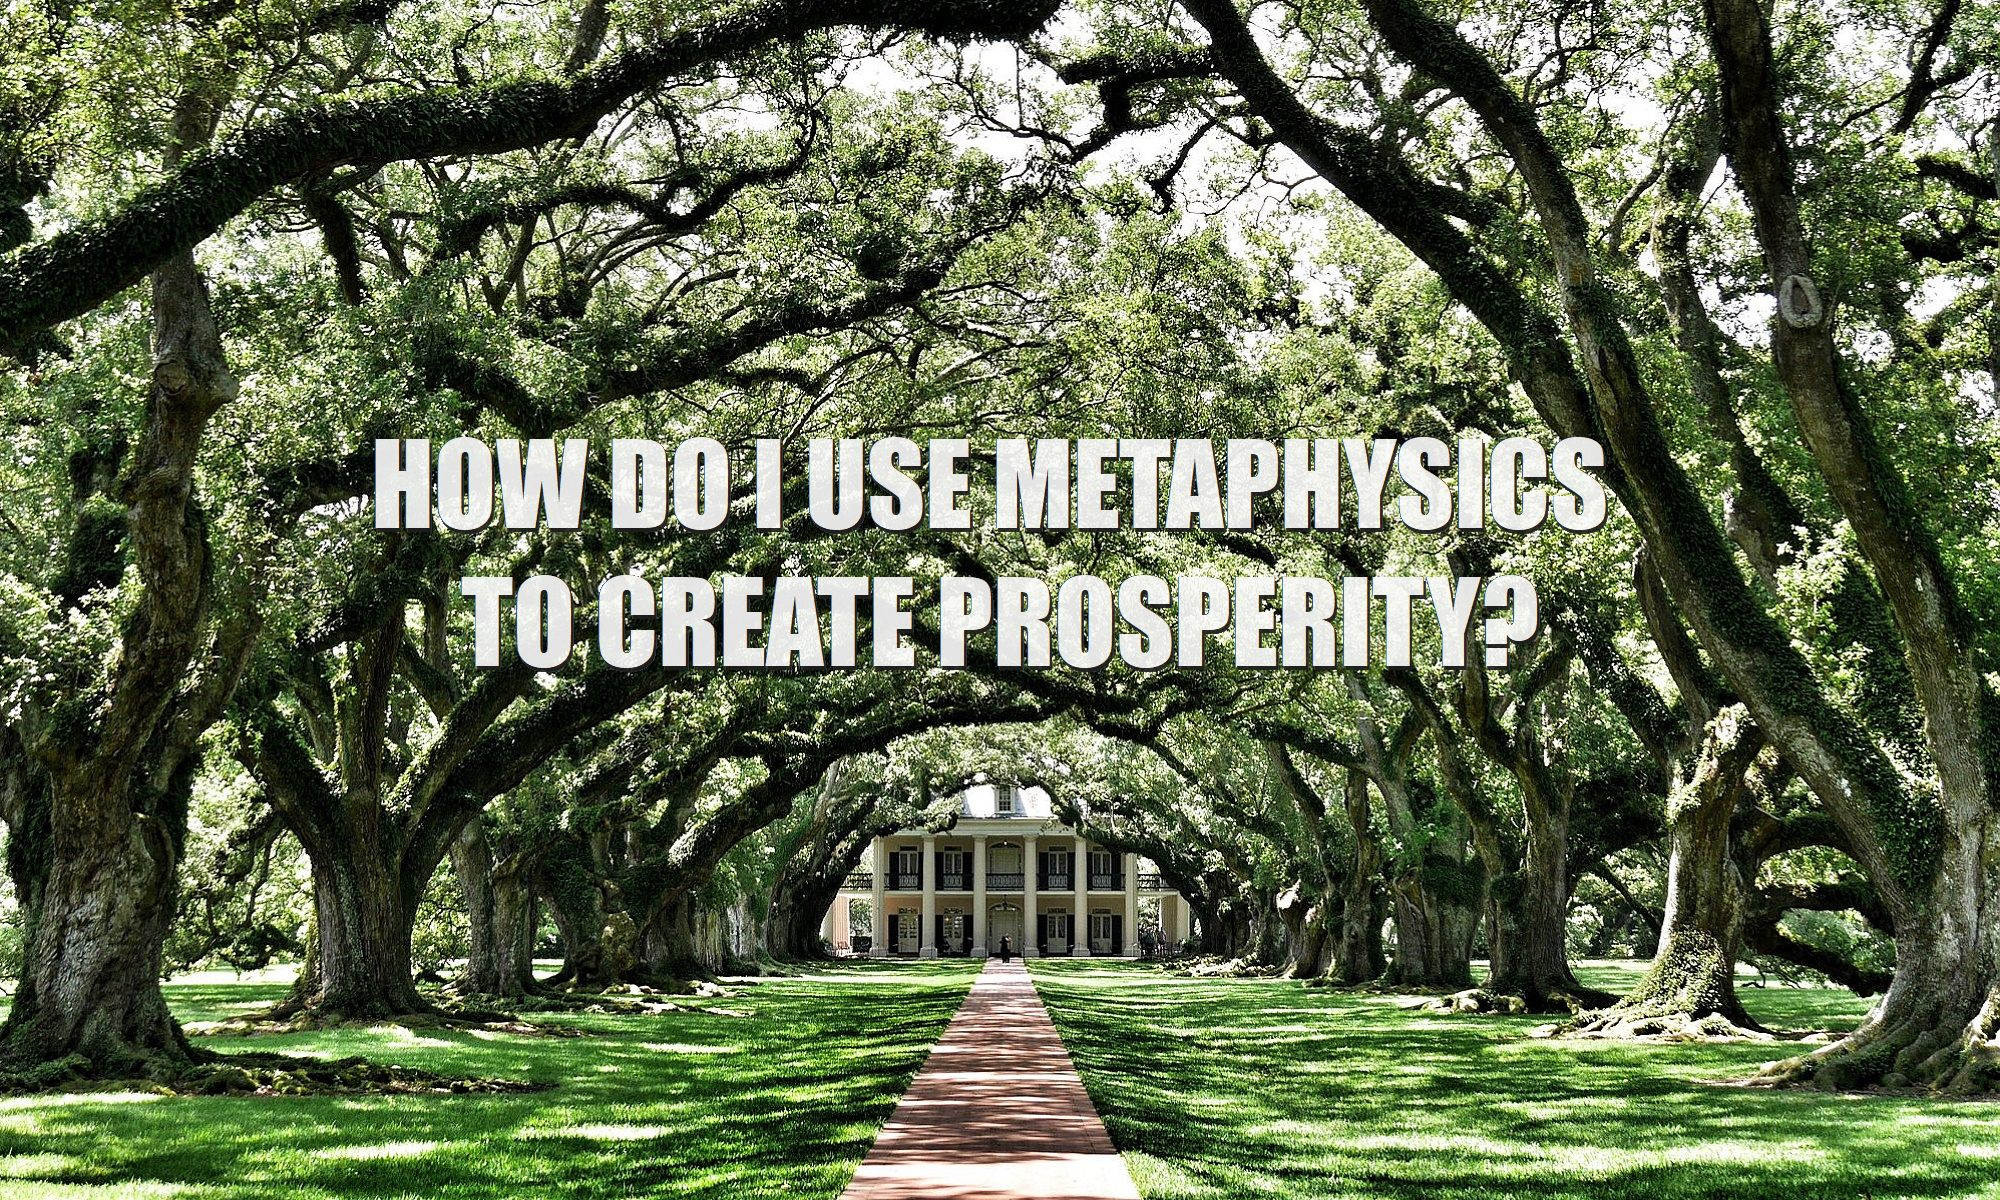 How-do-I-use-metaphysics-to-create-prosperity-manifest-wealth-money-positive-thoughts-materialize-success-3399-2000